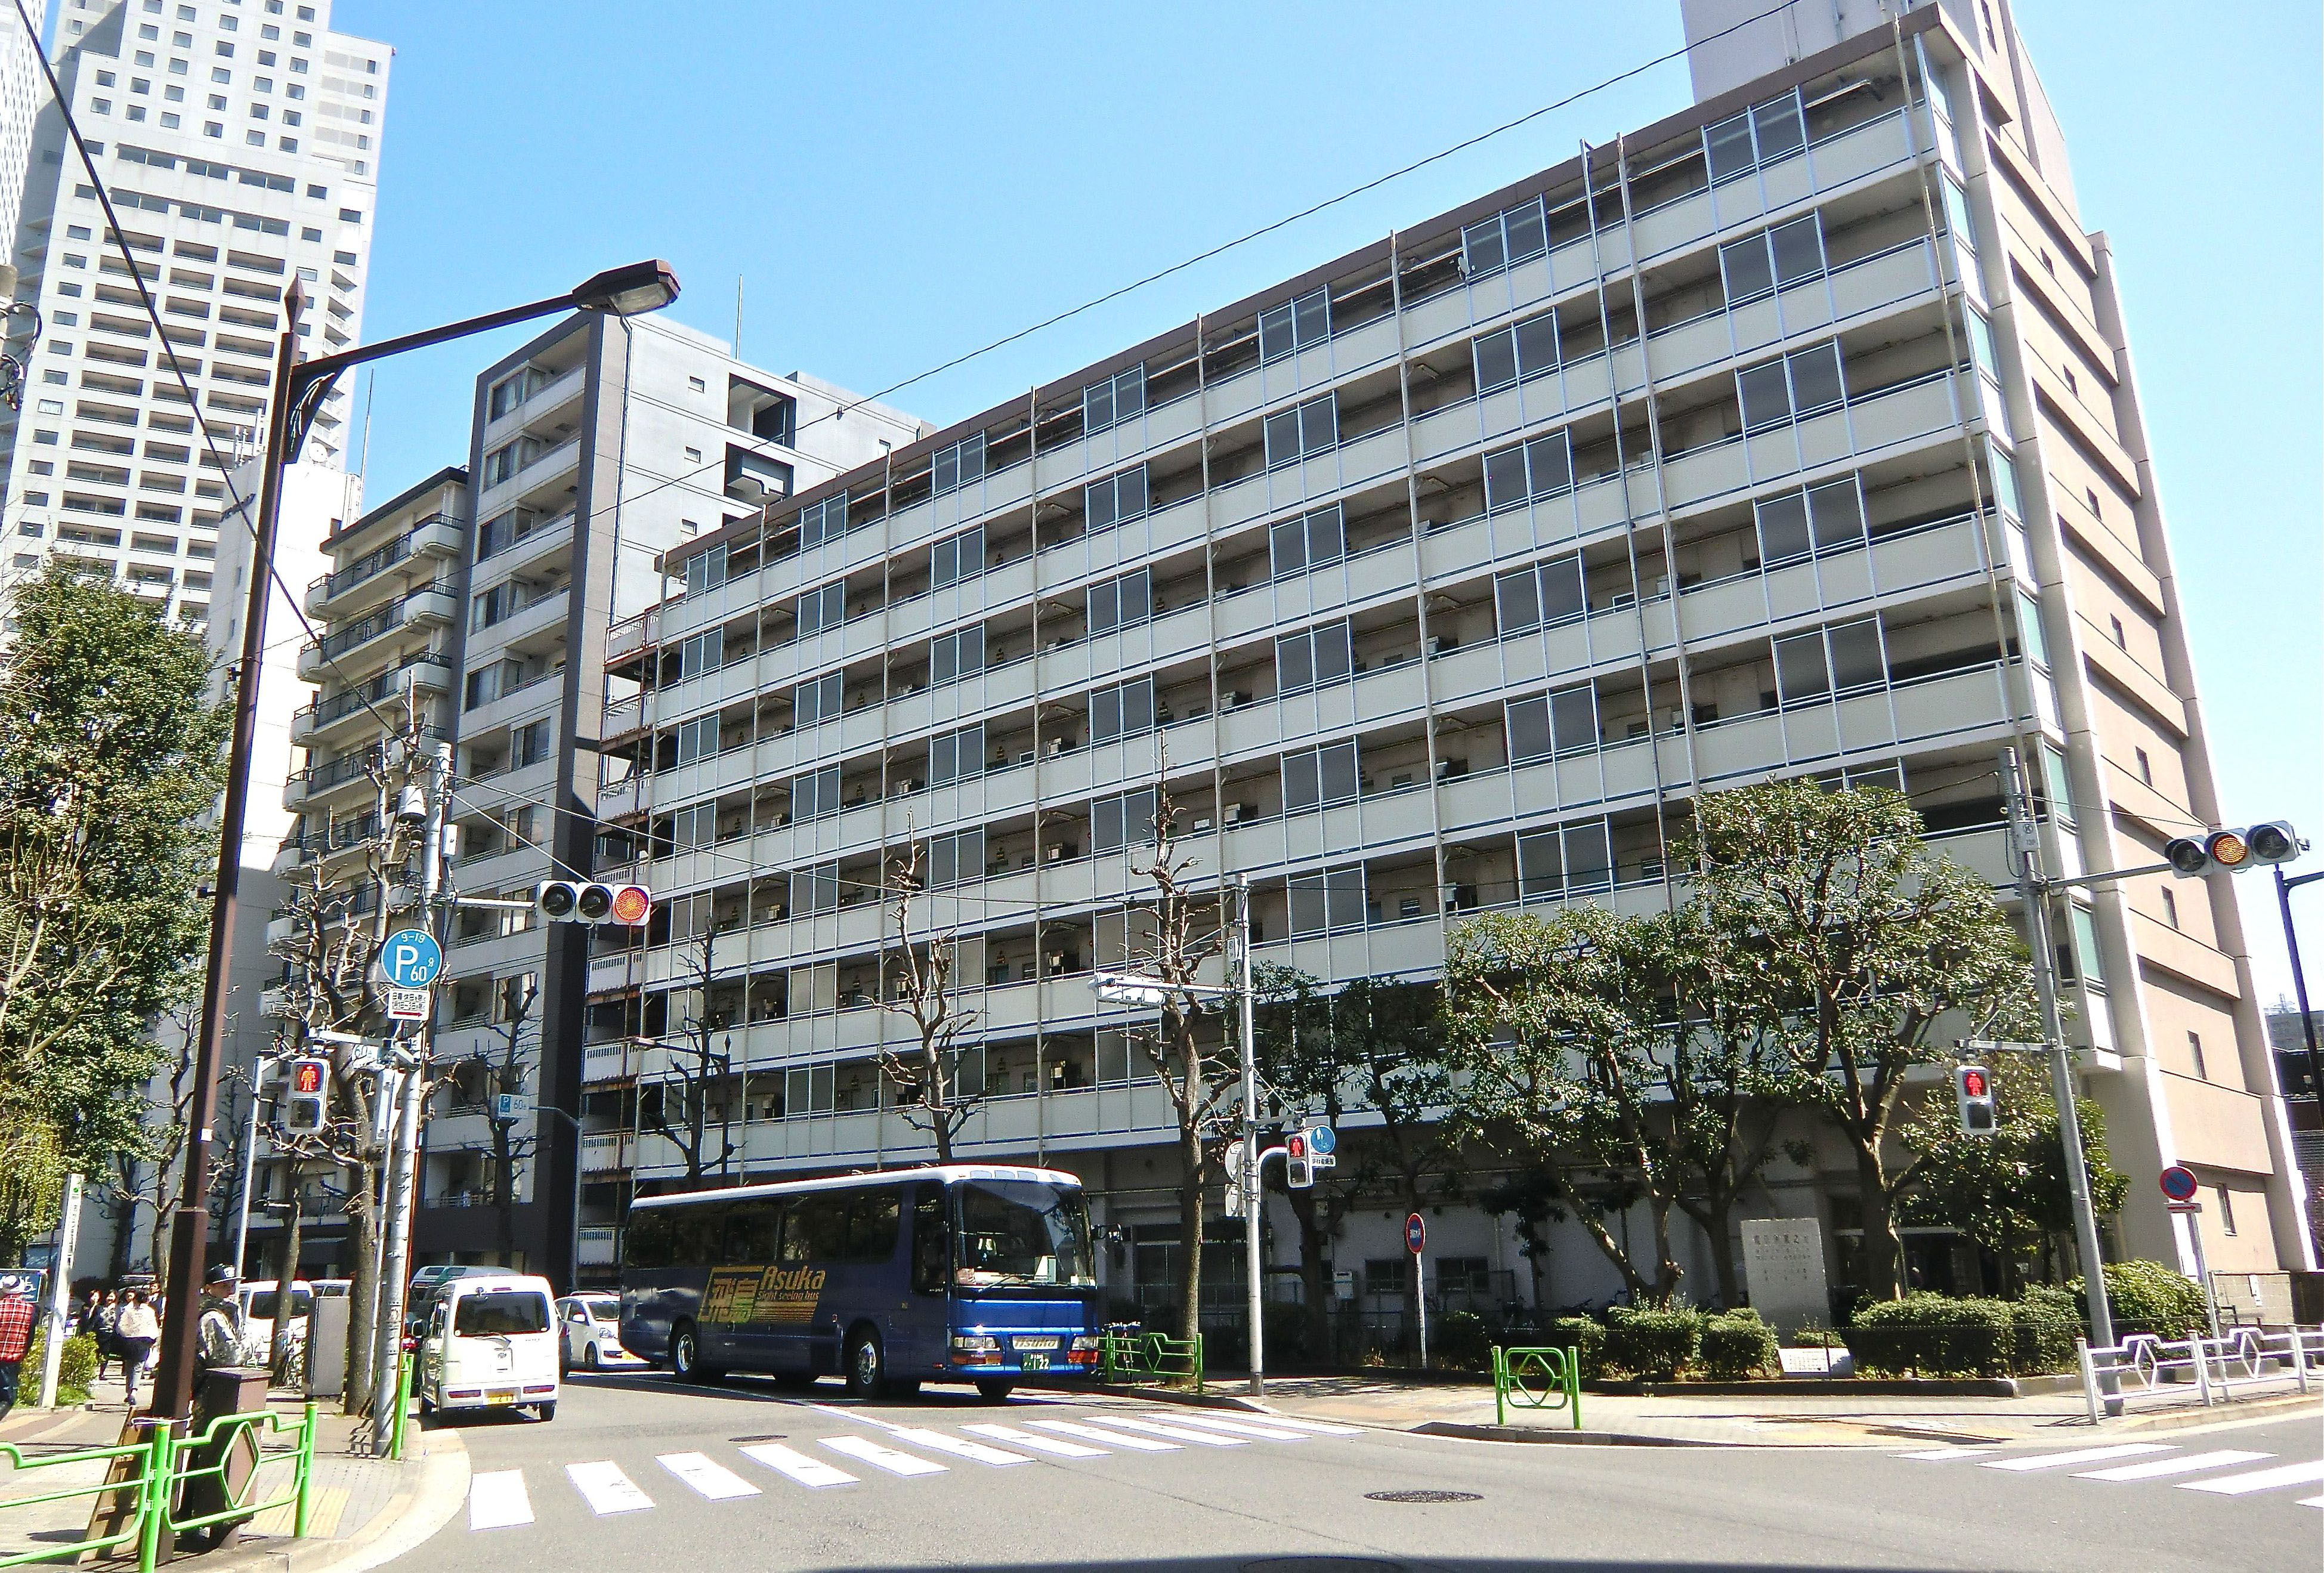 Japan's public housing system has a shelf life | The Japan ...